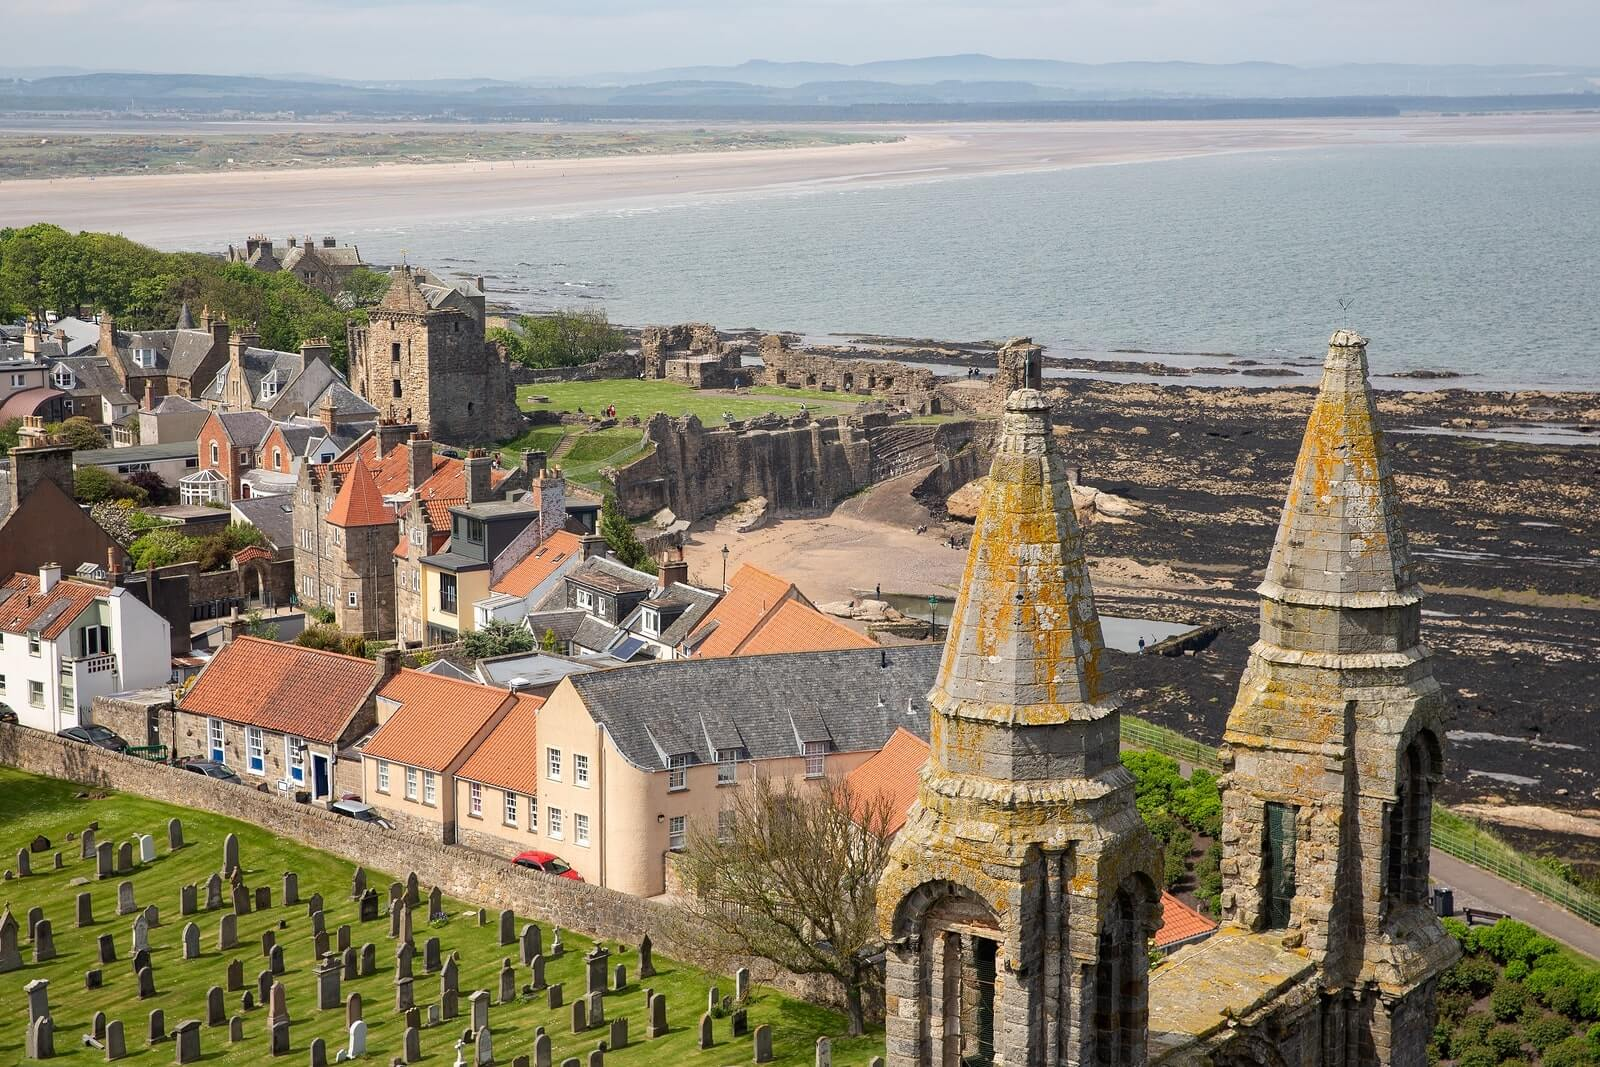 The town of St Andrews, in Fife